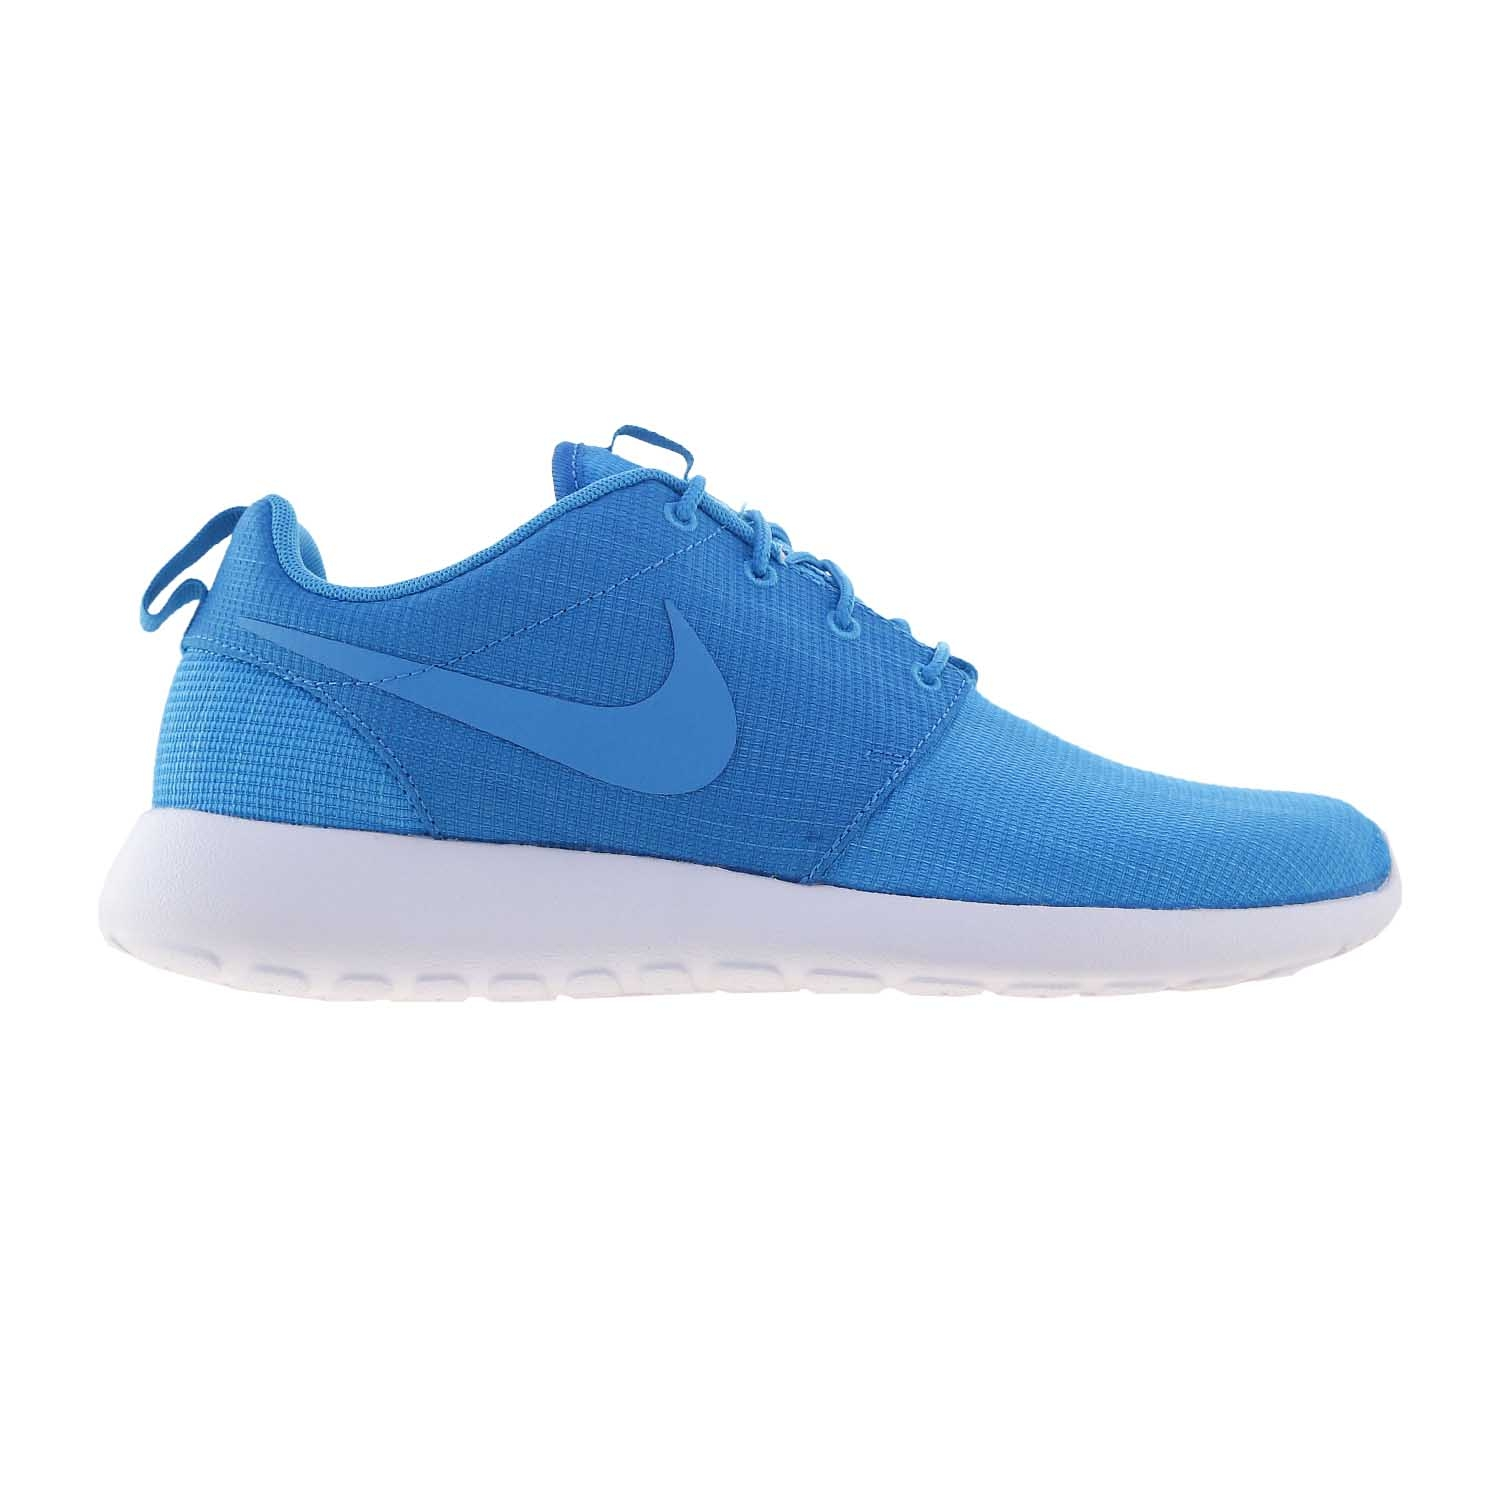 Nike Roshe One M ( 511881-447 ) παπούτσια    άνδρας   sneakers   trainers